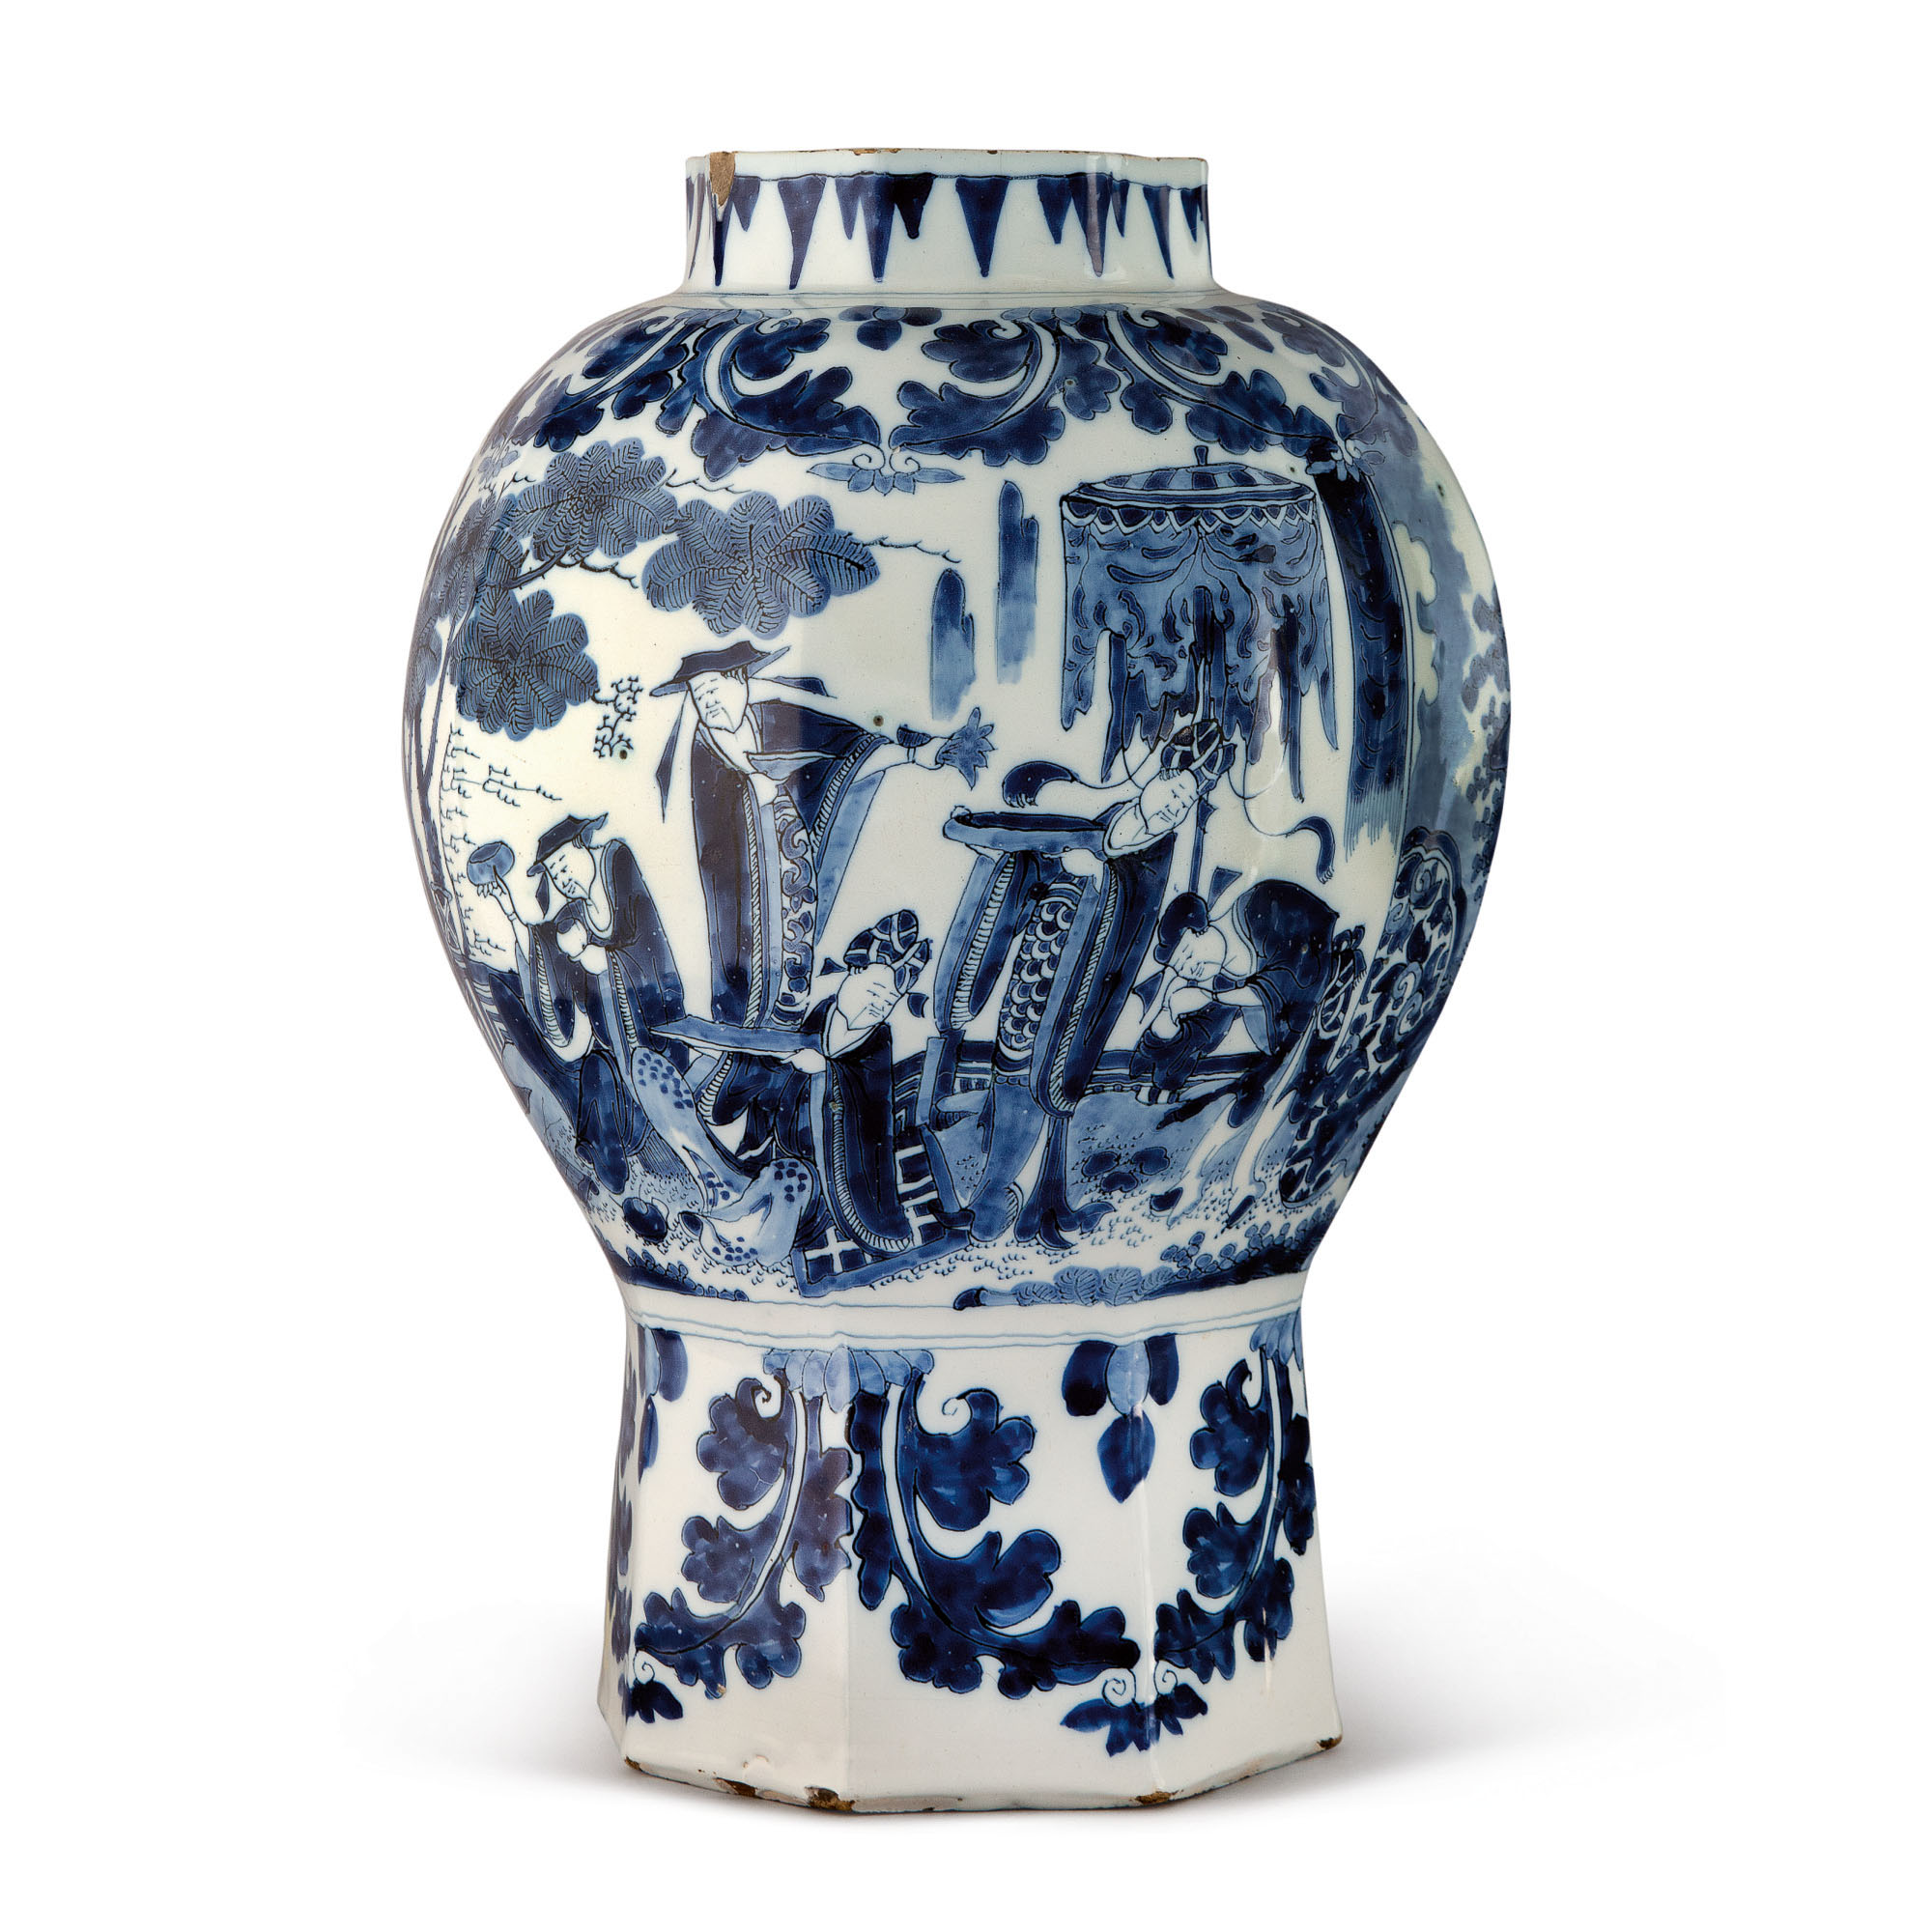 A DUTCH DELFT BLUE AND WHITE BALUSTER VASE, LATE 17TH CENTURY